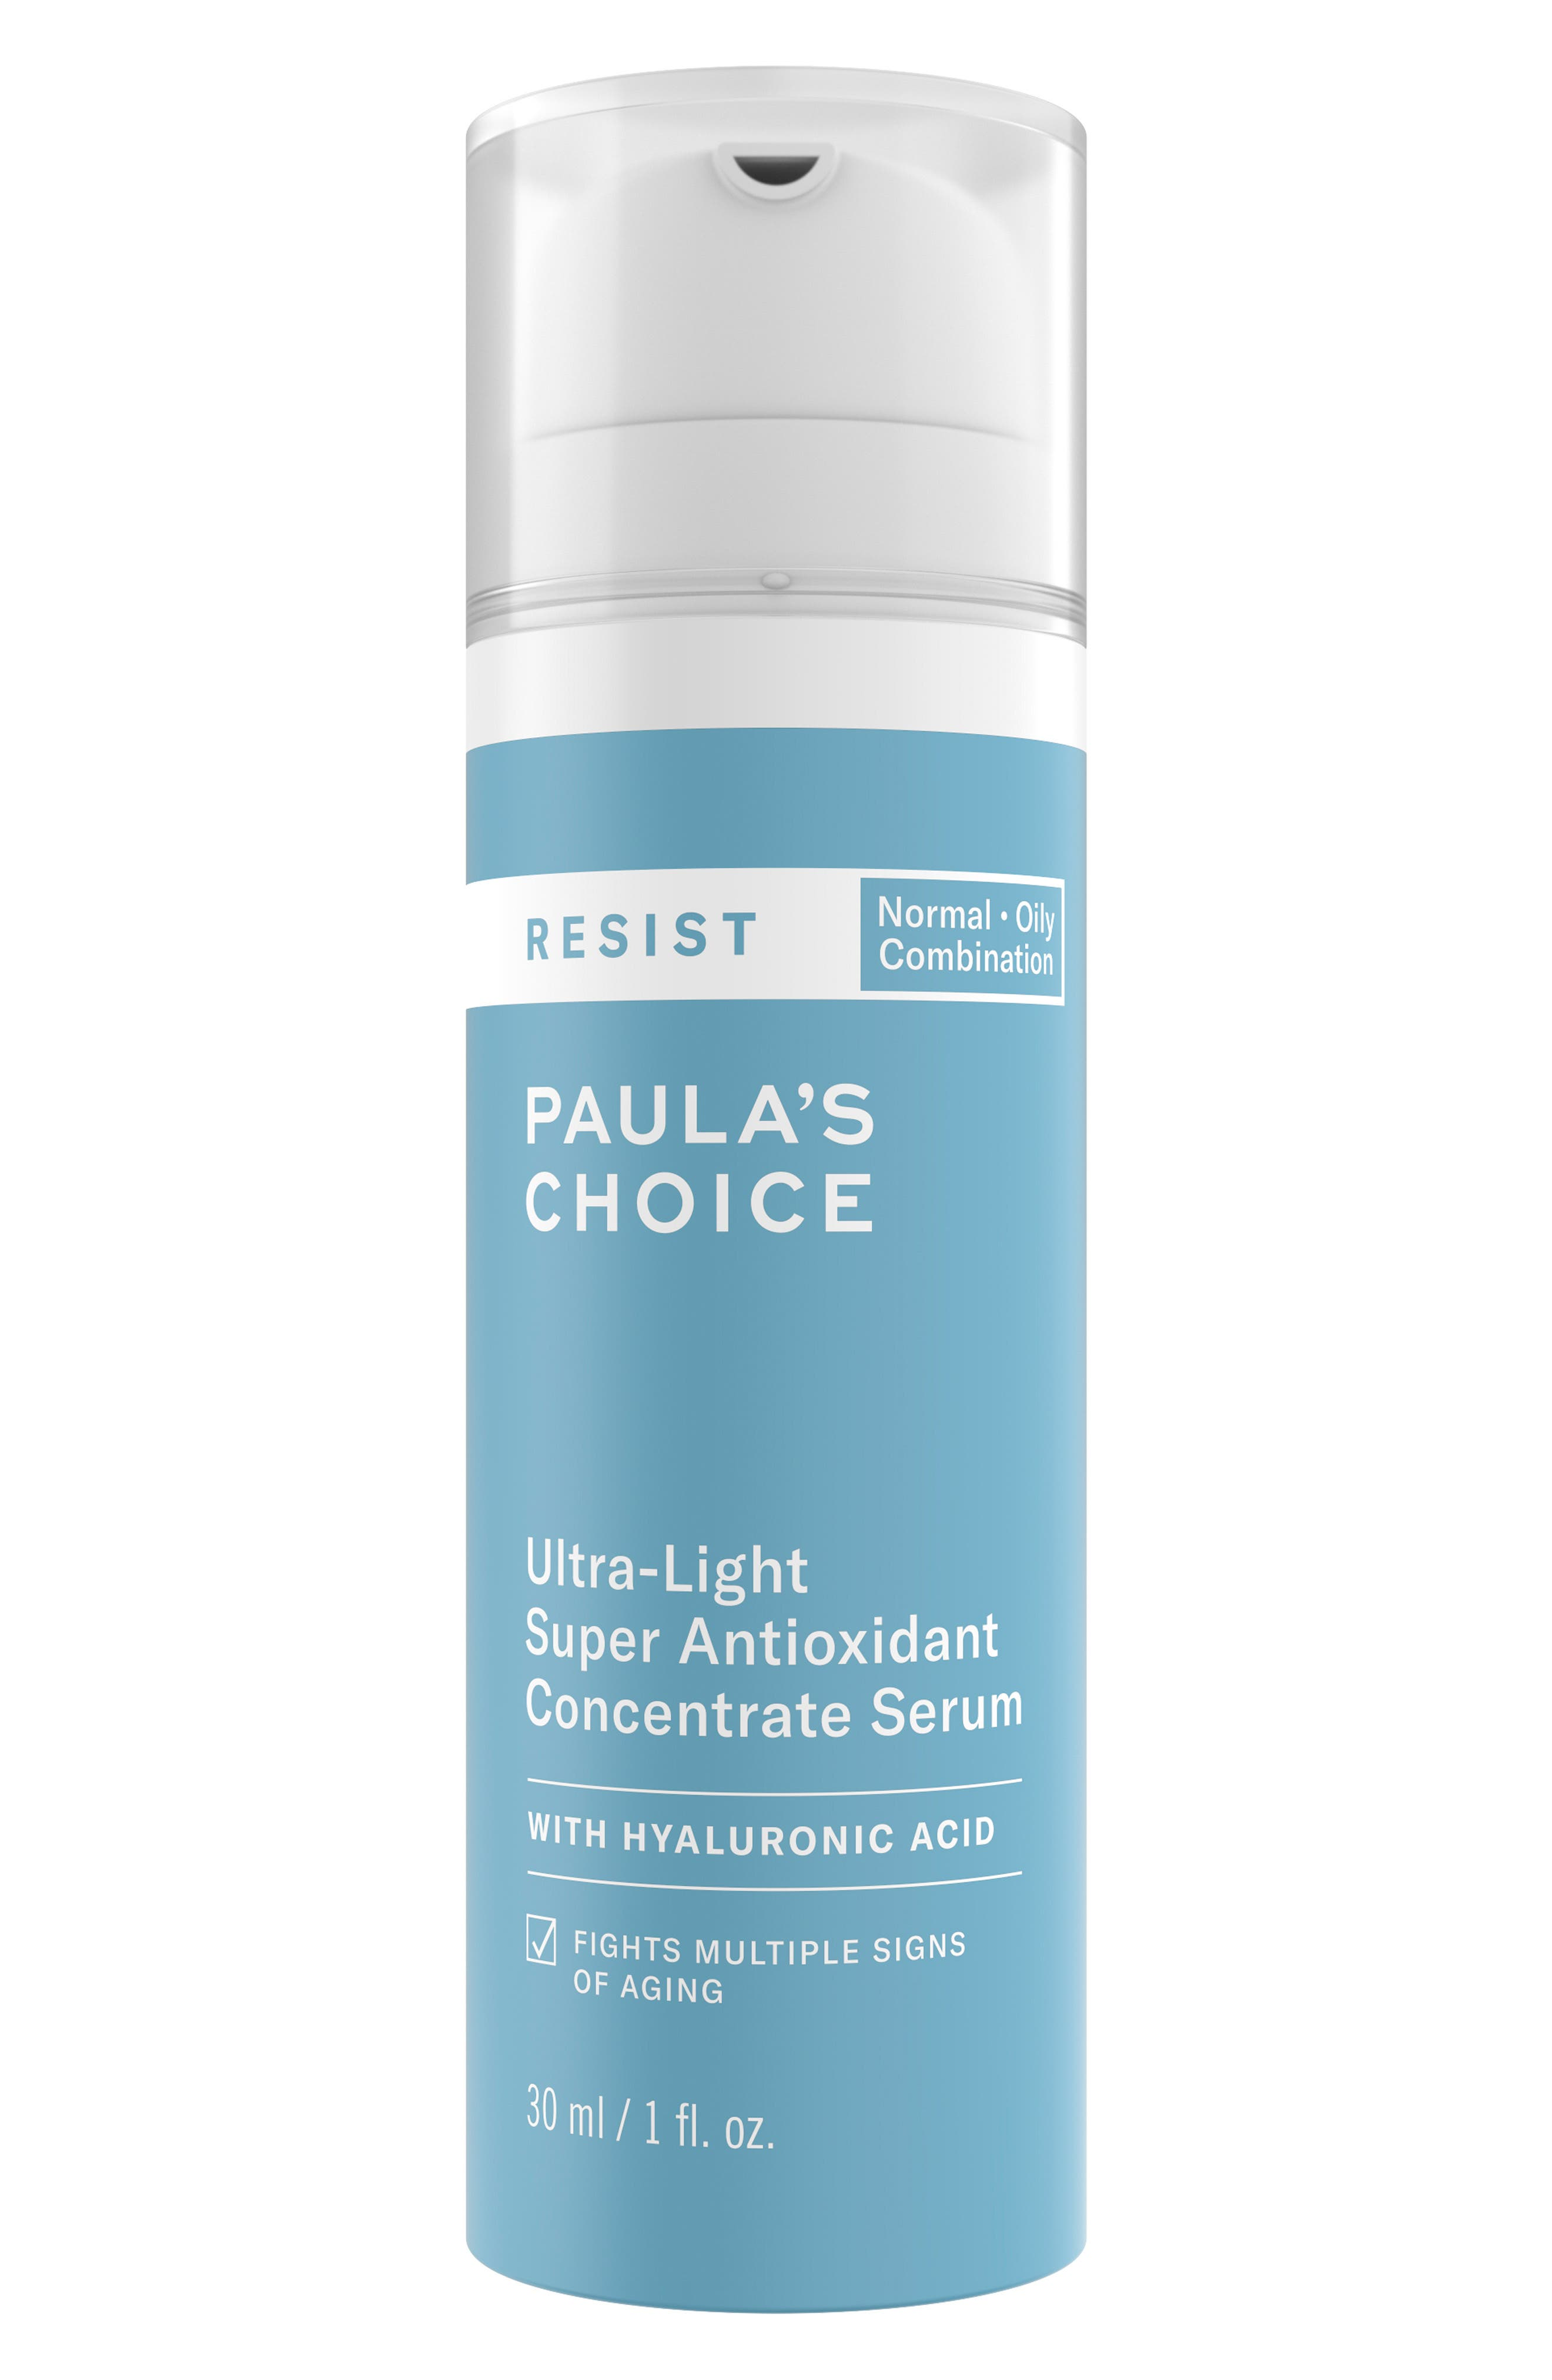 Resist Ultra-Light Antioxidant Concentrate Serum with Vitamin C,                             Main thumbnail 1, color,                             NO COLOR